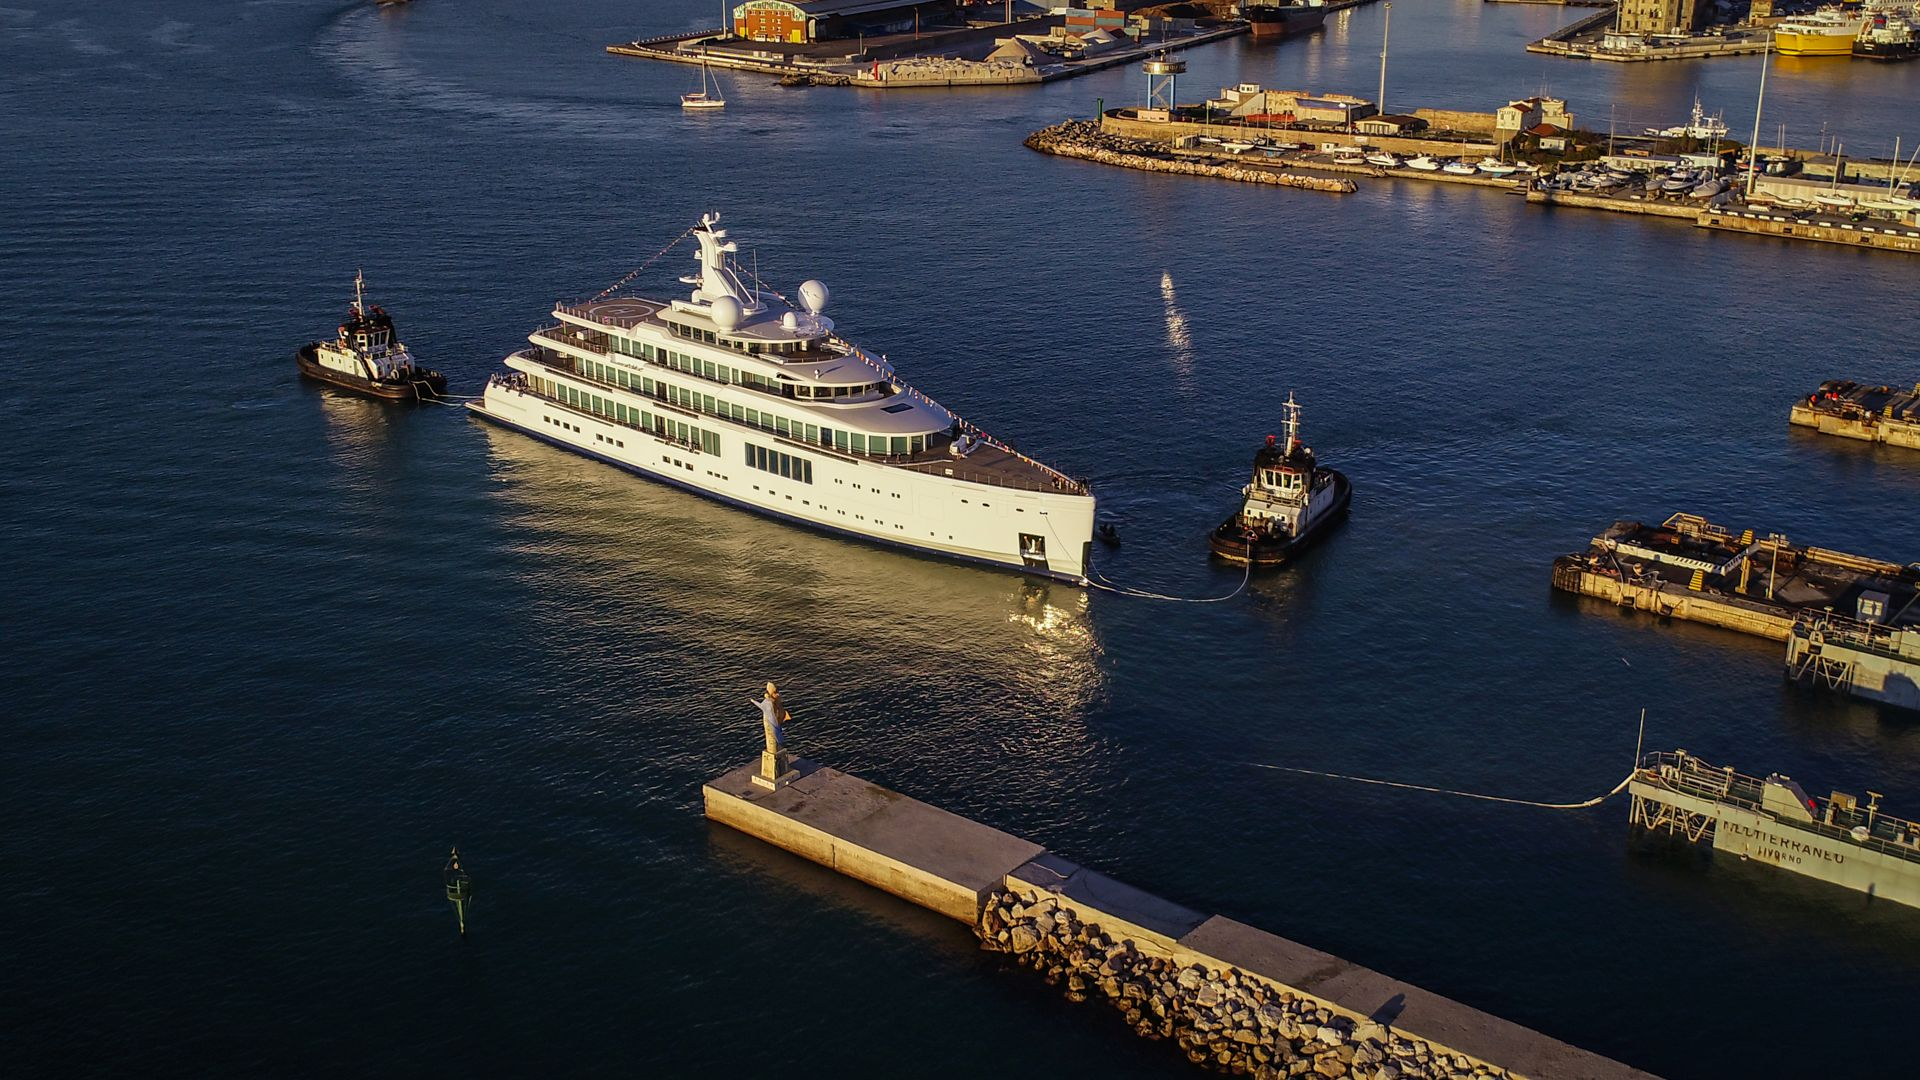 Benetti FB272 gigayacht launched in Livorno, Italy - Photo © Benetti